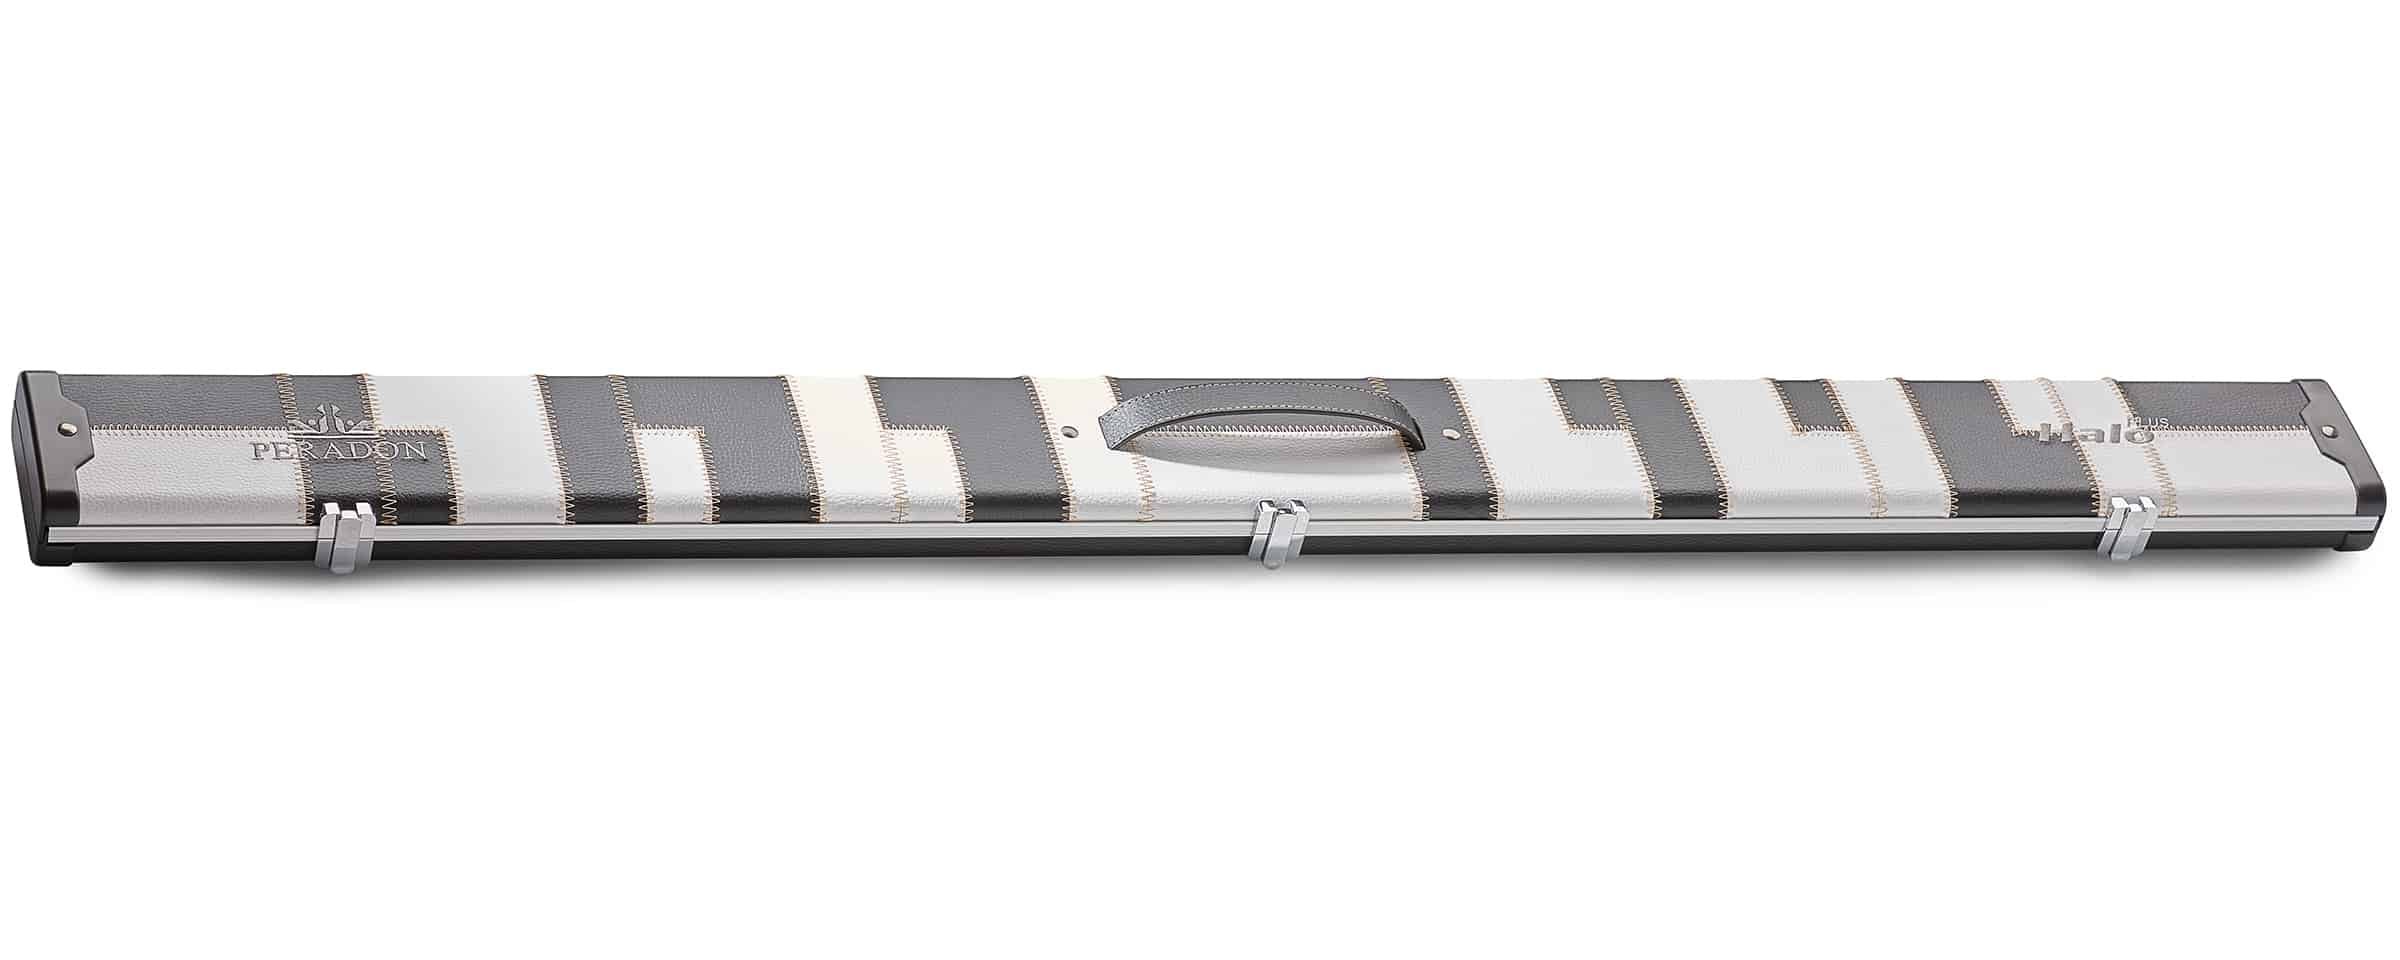 Peradon Halo Plus Black White Patch ¾ Jointed Extra Wide Snooker Cue Case